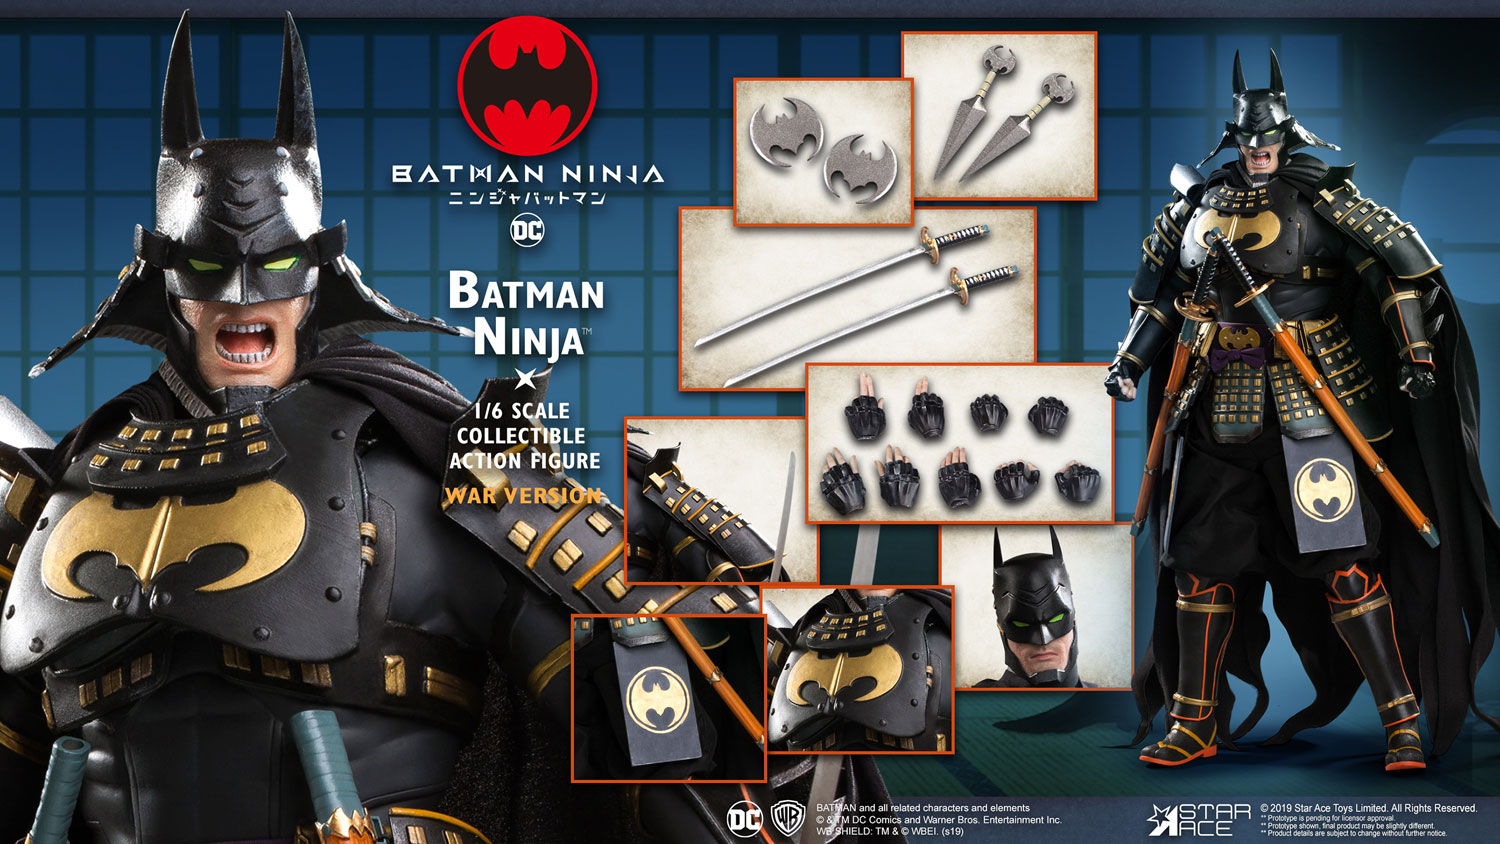 Batman Collectible Action Figure: Ninja  (War version) (1/6 scale) - Star Ace Toys Limited